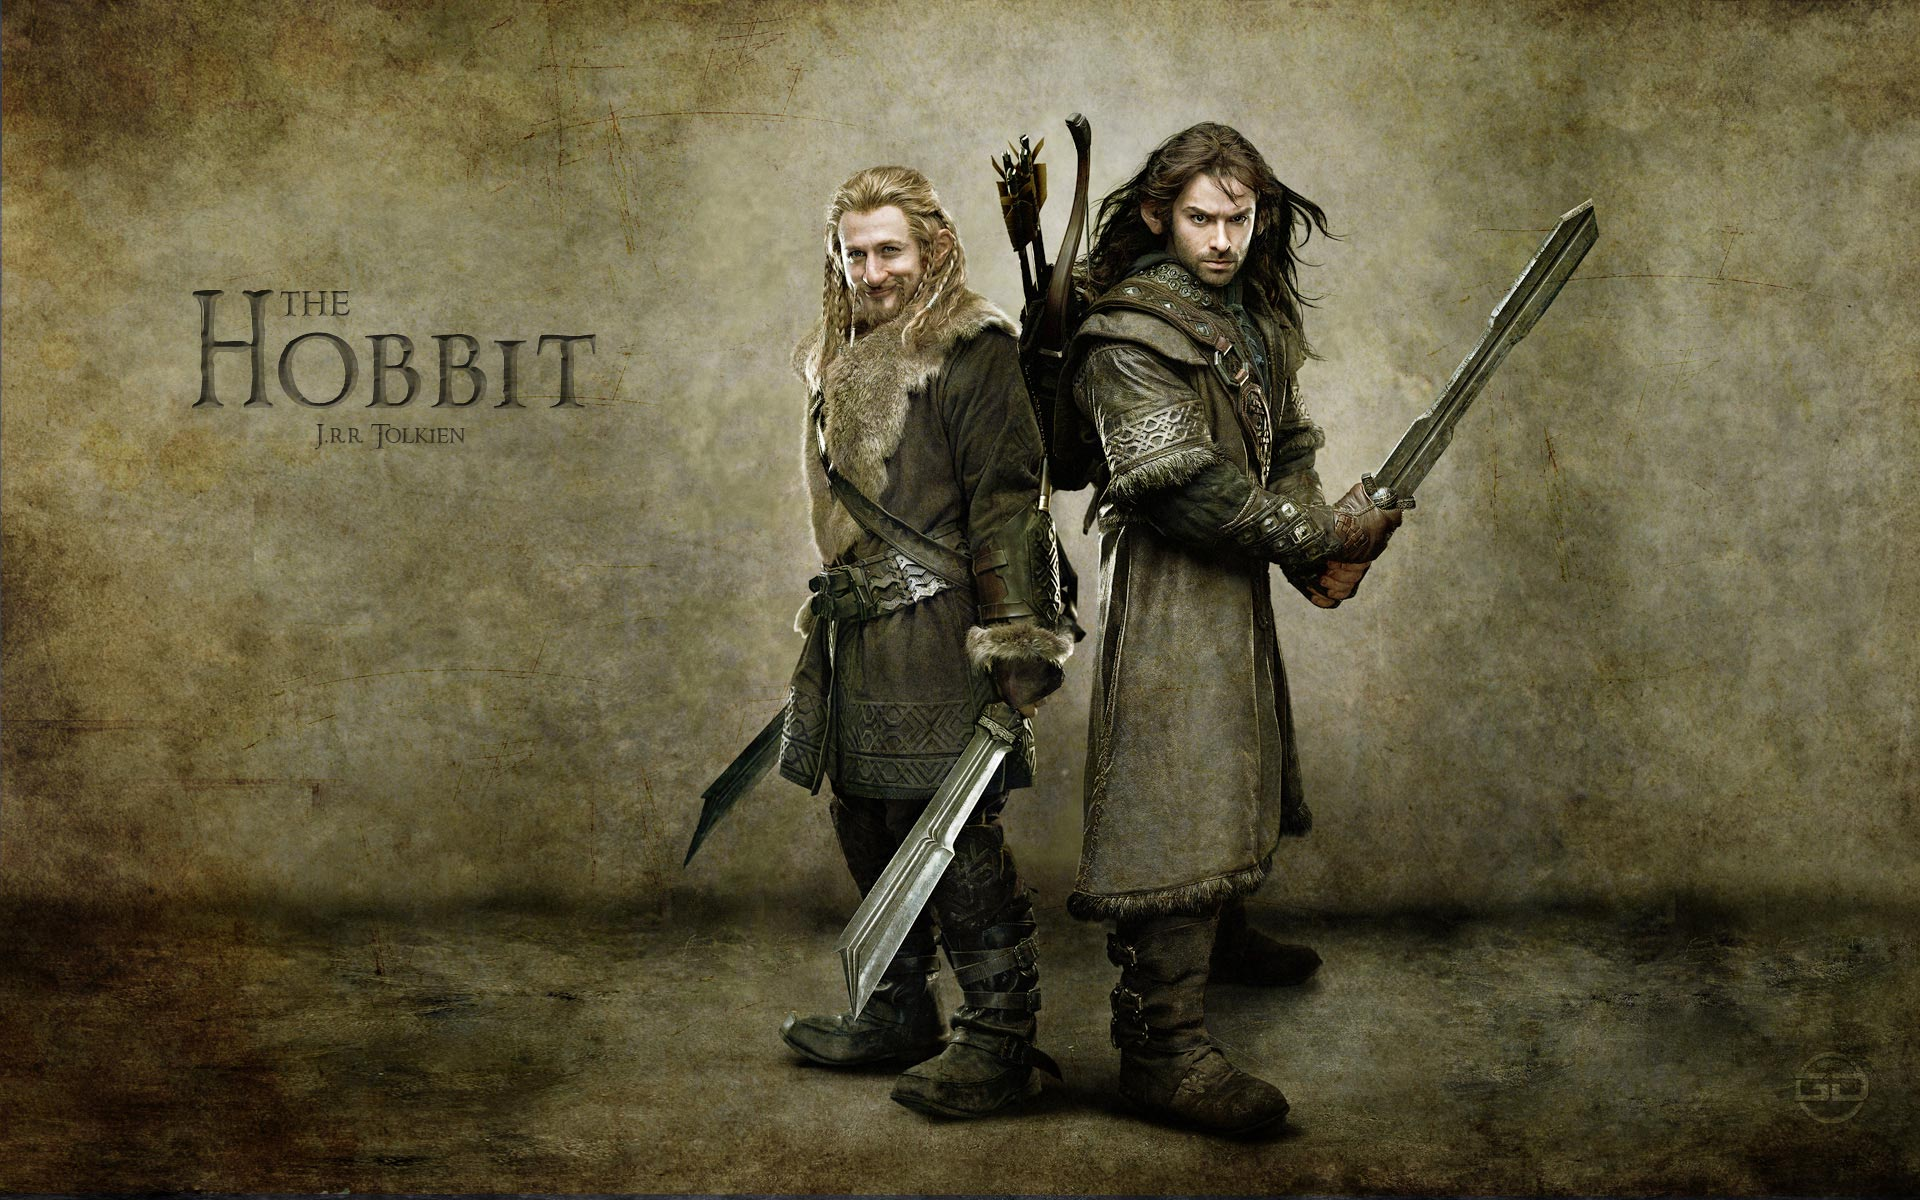 The Hobbit An Unexpected Journey images the hobbit fili kili HD 1920x1200